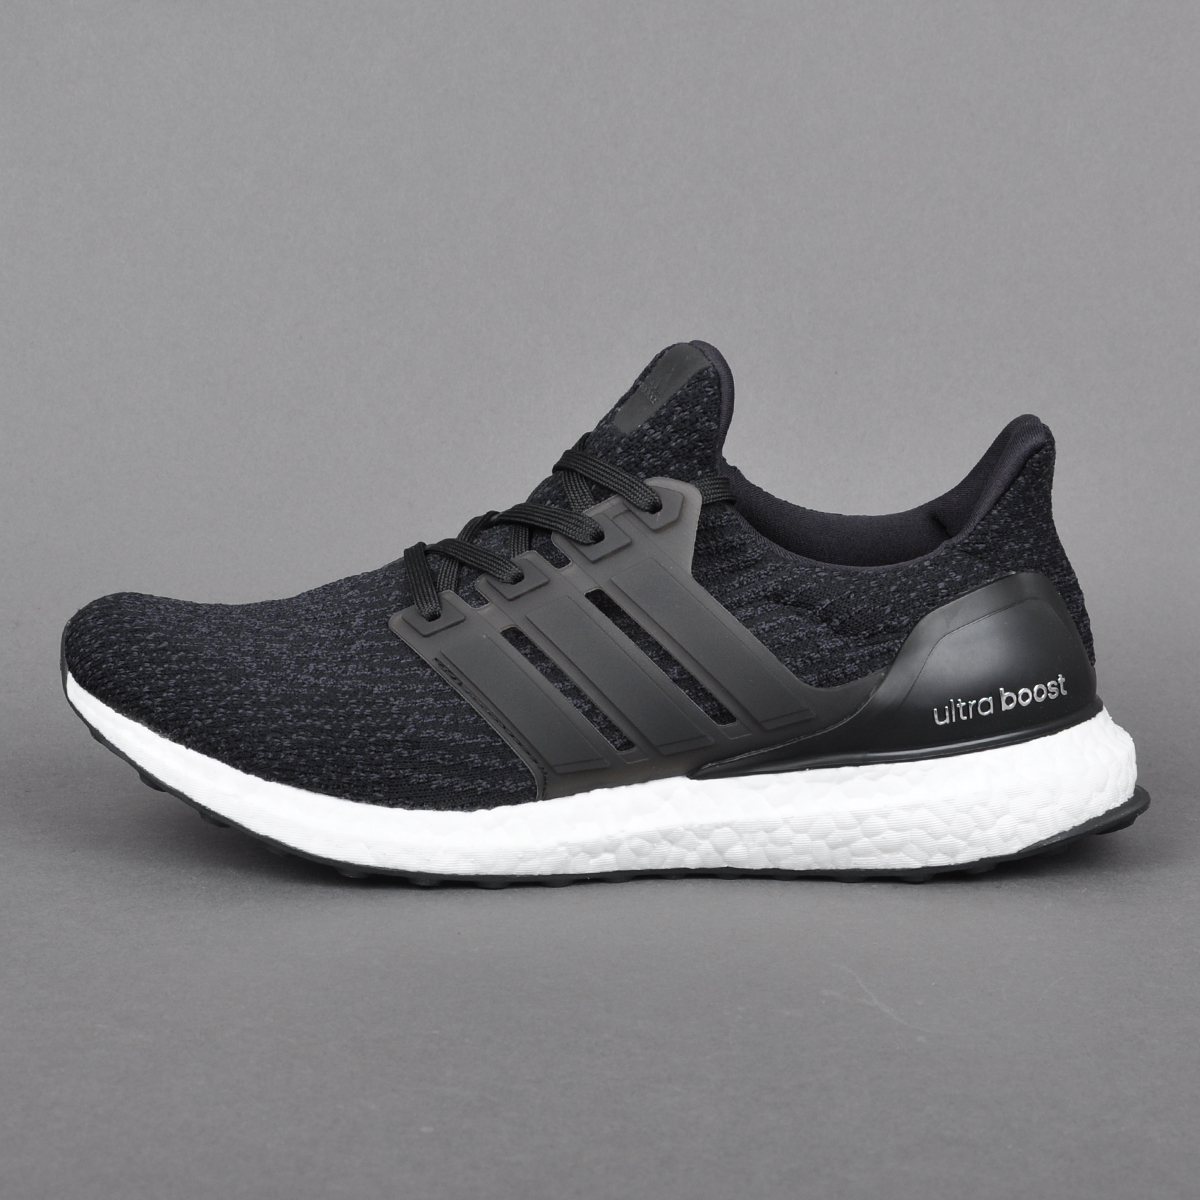 2017 adidas ultra boost 3 0 clear gray size 13 bb6059. Black Bedroom Furniture Sets. Home Design Ideas